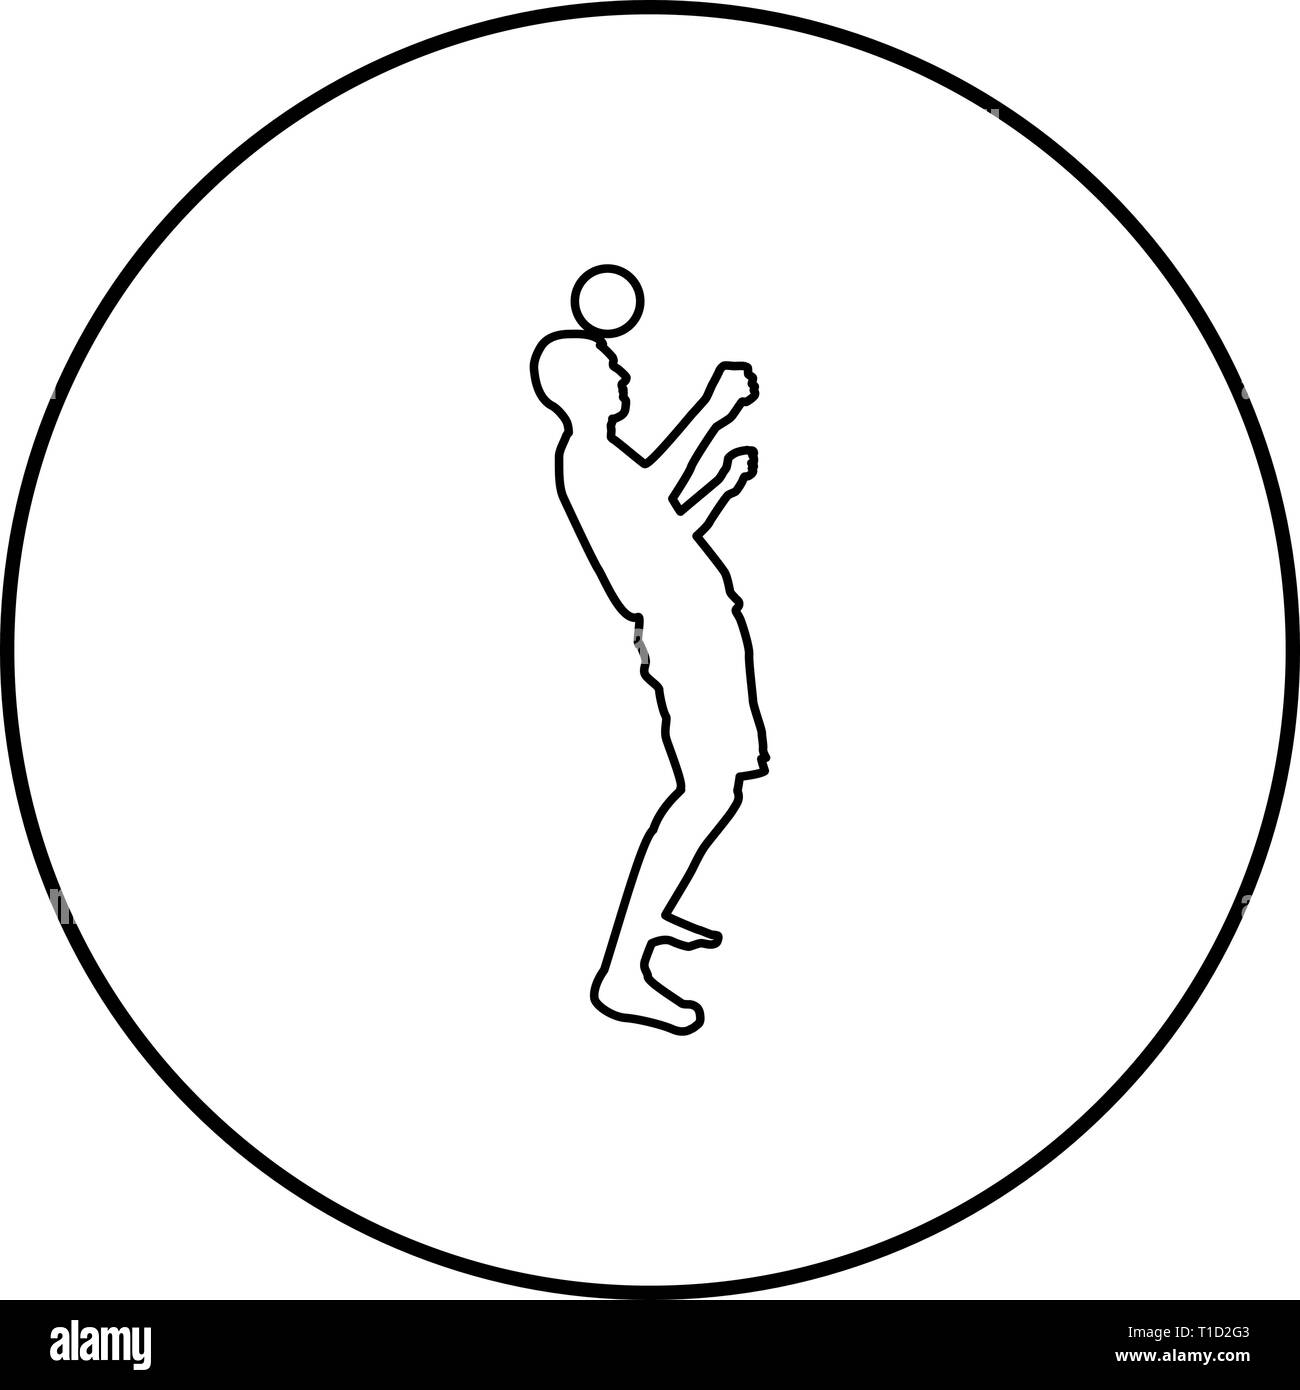 Man kicks the ball on head. Soccer player taps ball with his head Football concept Juggling trick with ball icon outline black color vector in circle - Stock Vector